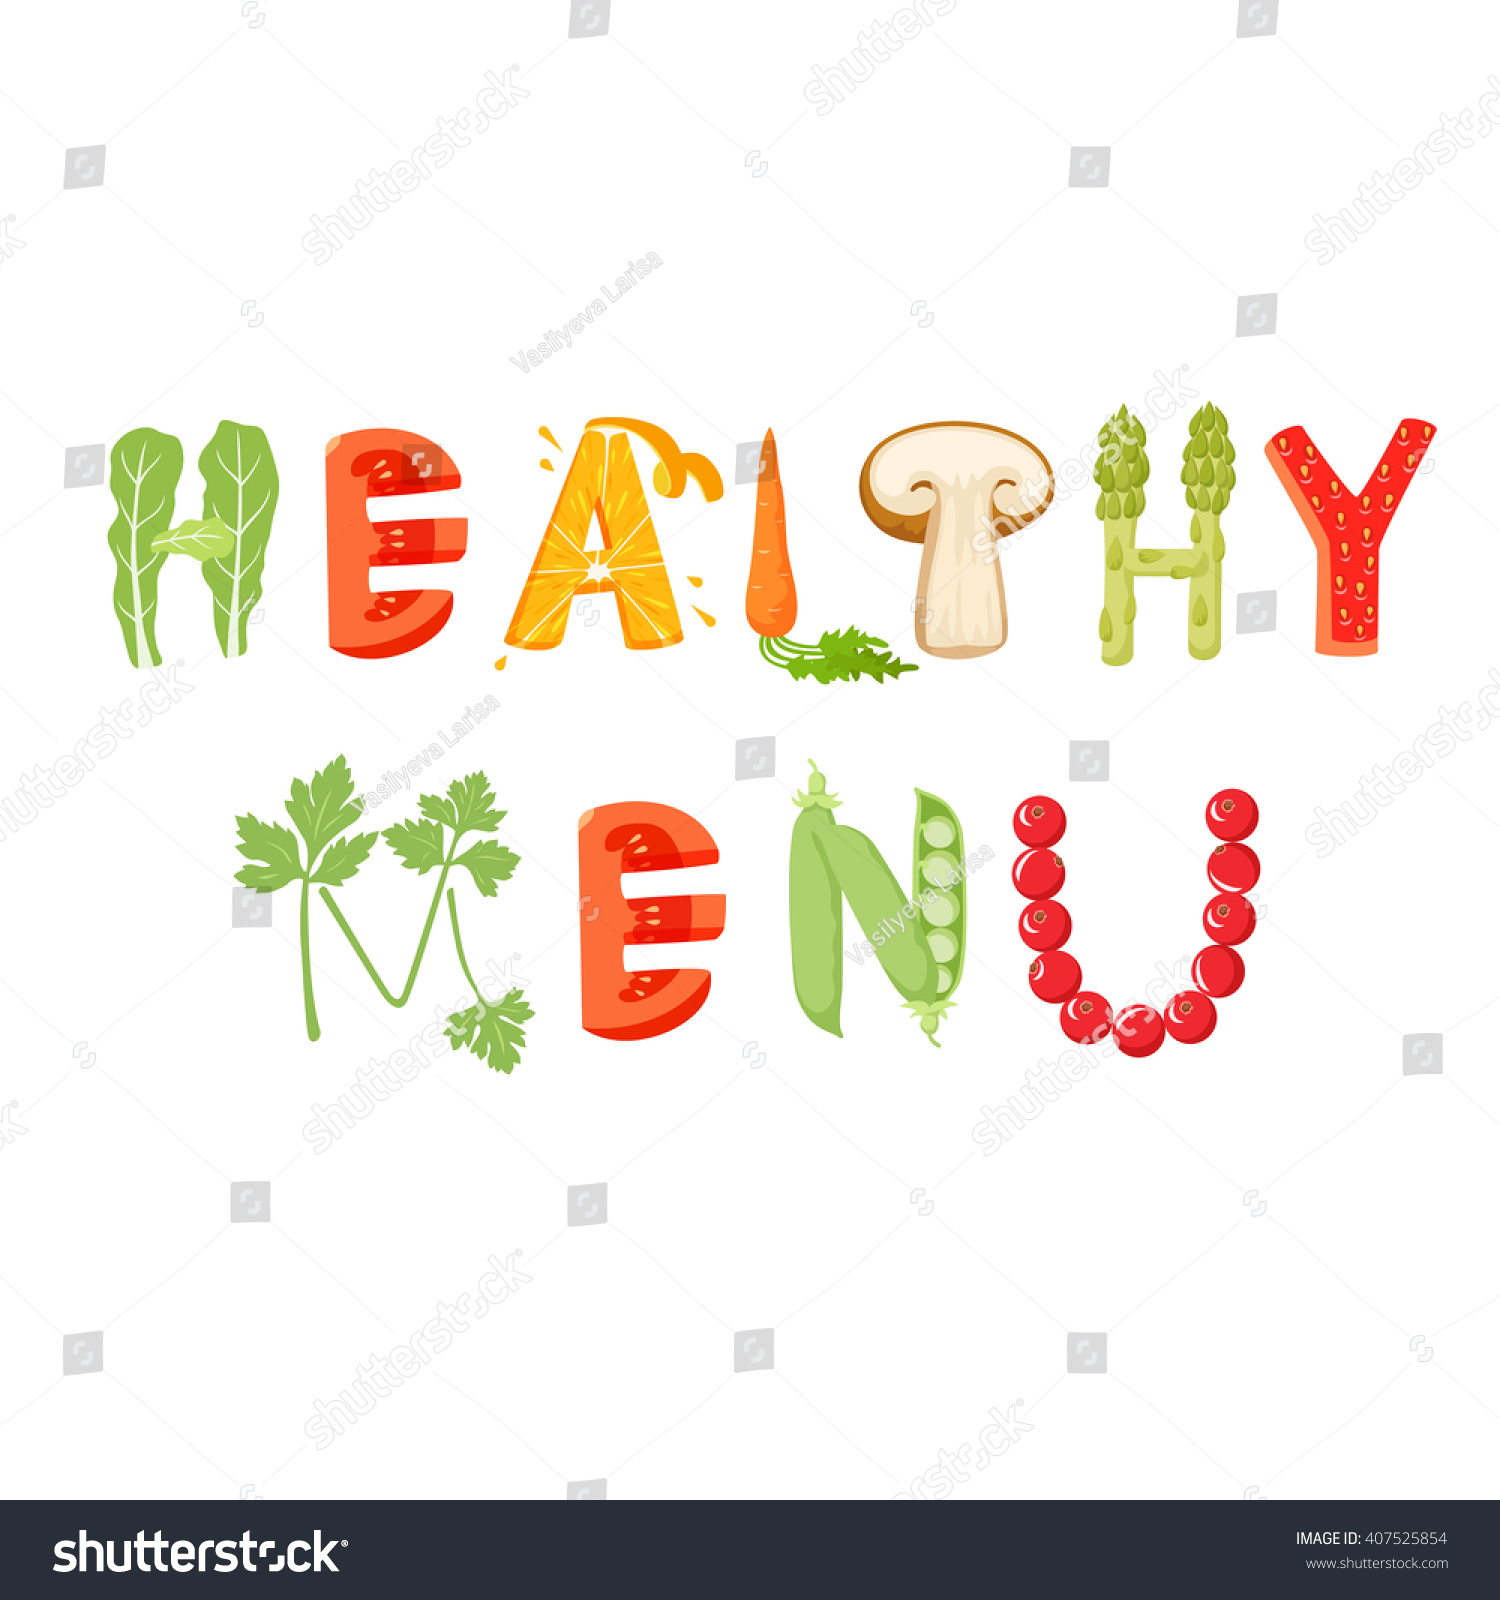 Healthy Menu Vegetables Letter Healthy Food Stock Photo (Photo ...